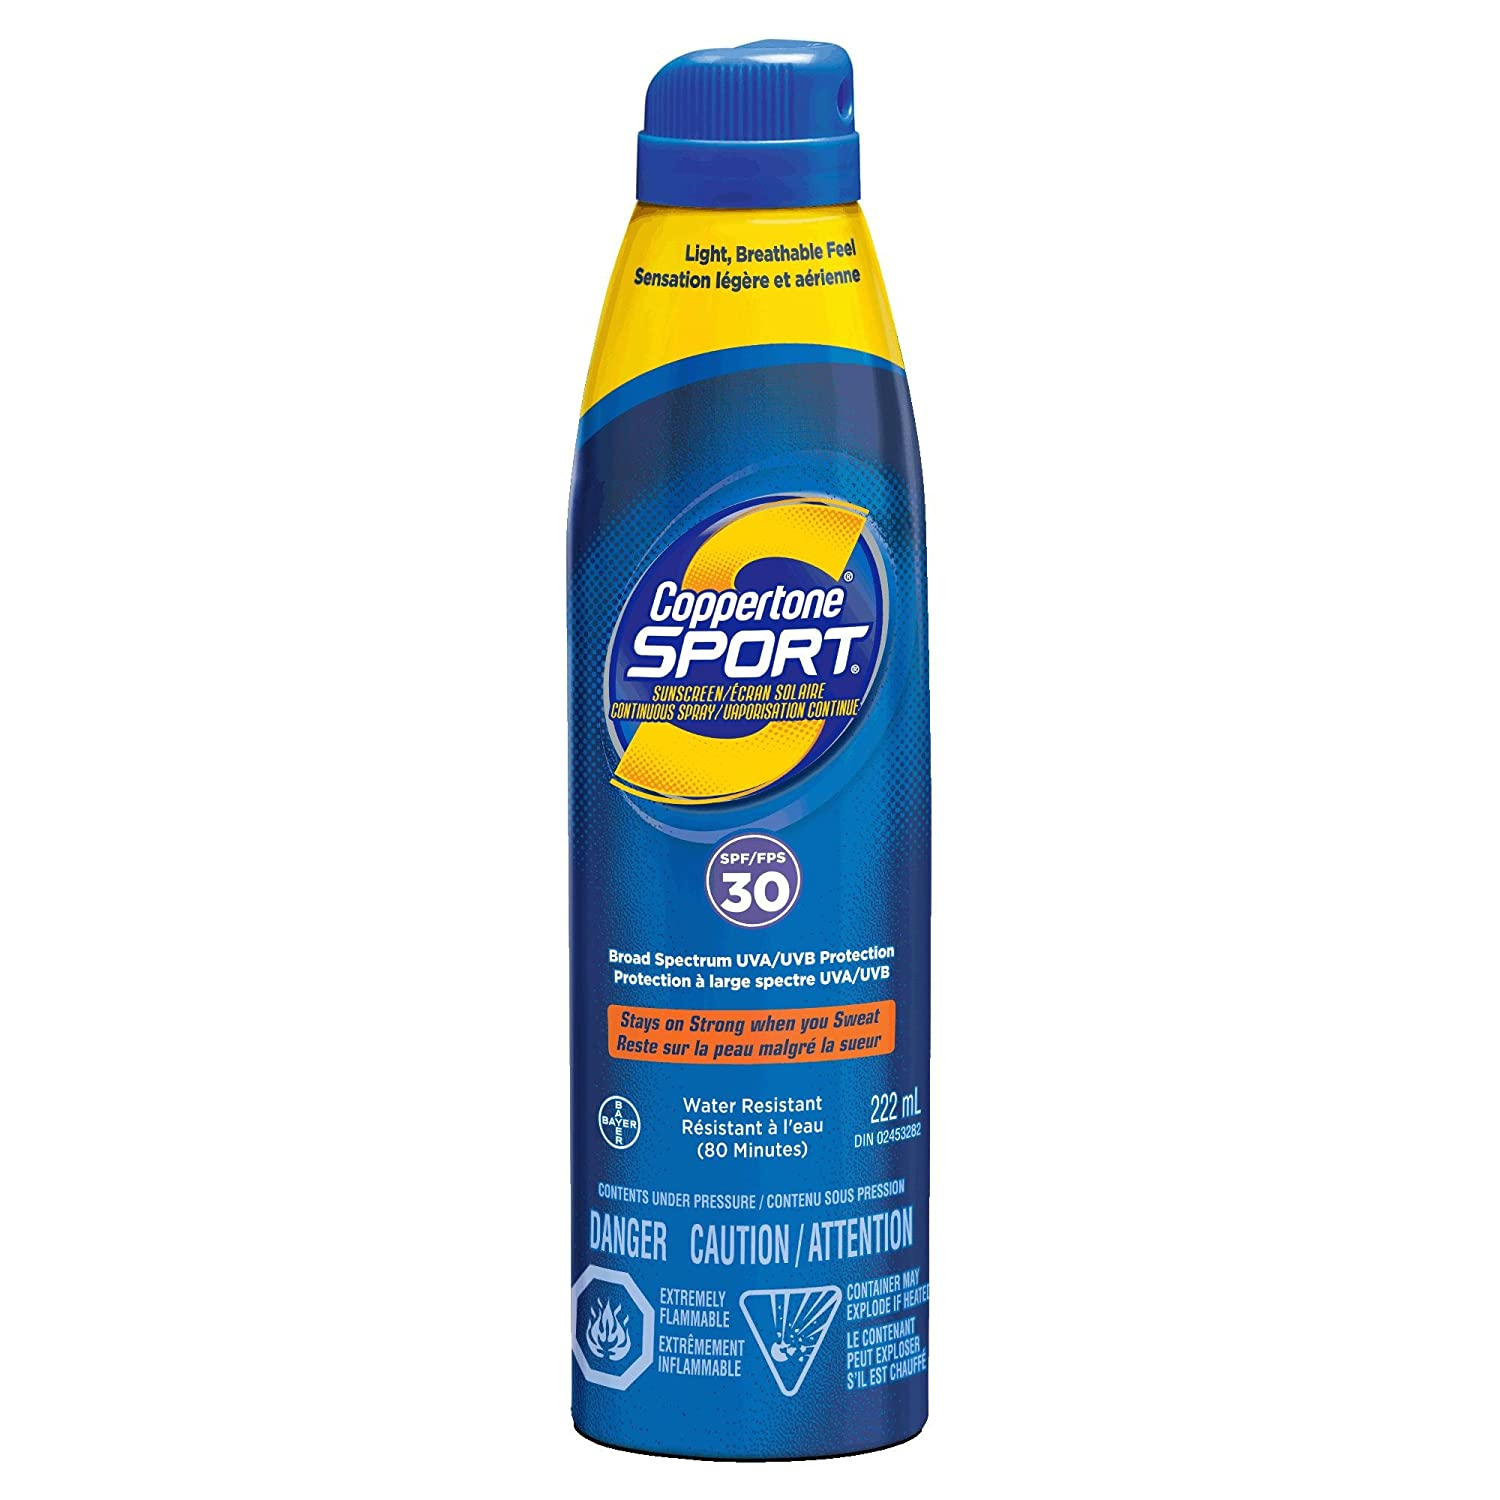 Coppertone Sport Clear Continuous Spray Sunscreen Spf30 0.55-Pounds